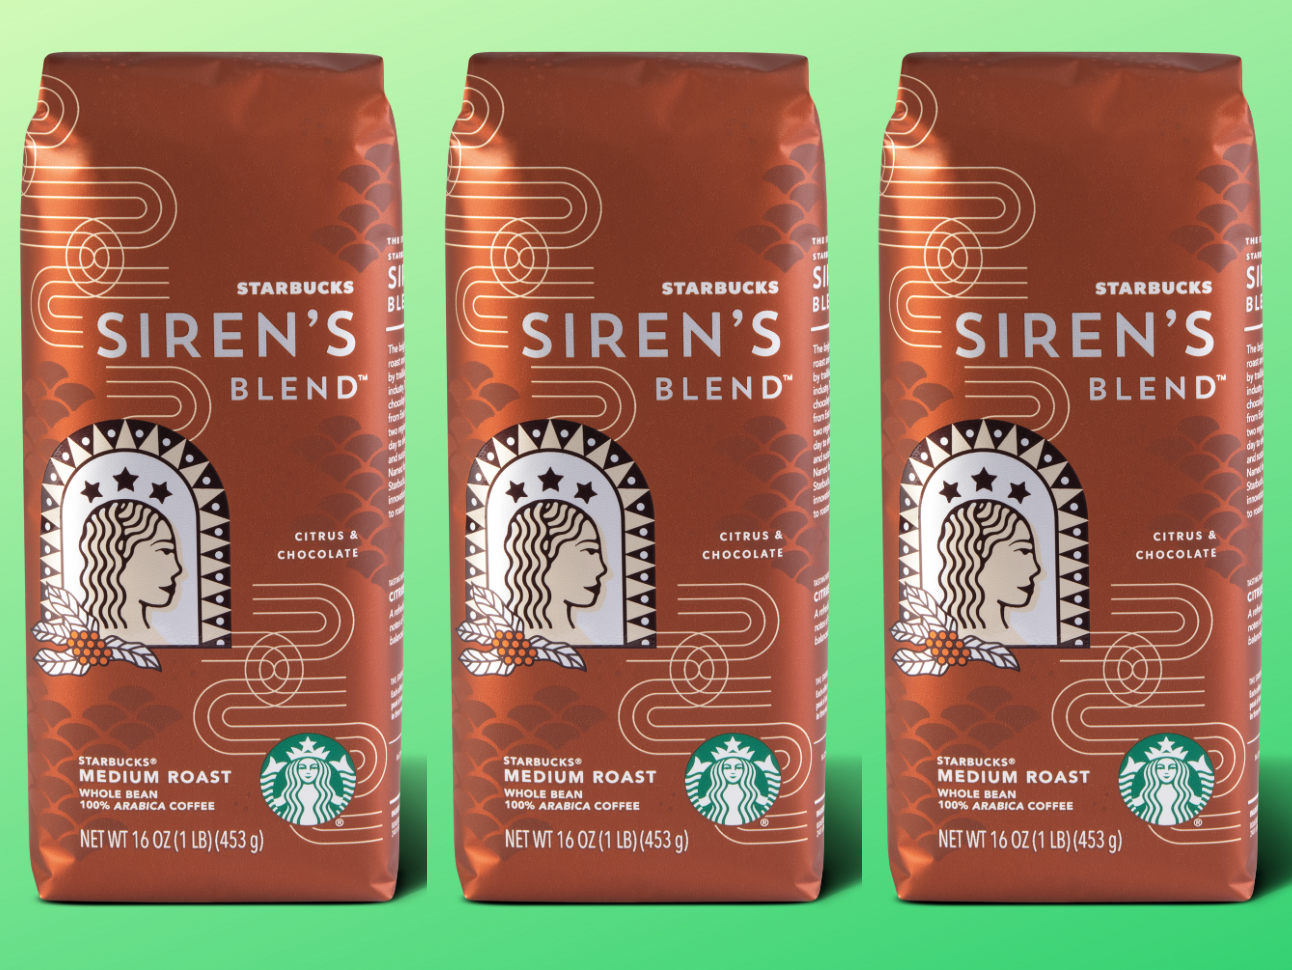 Starbucks' New Blend Is Inspired by Female Empowerment